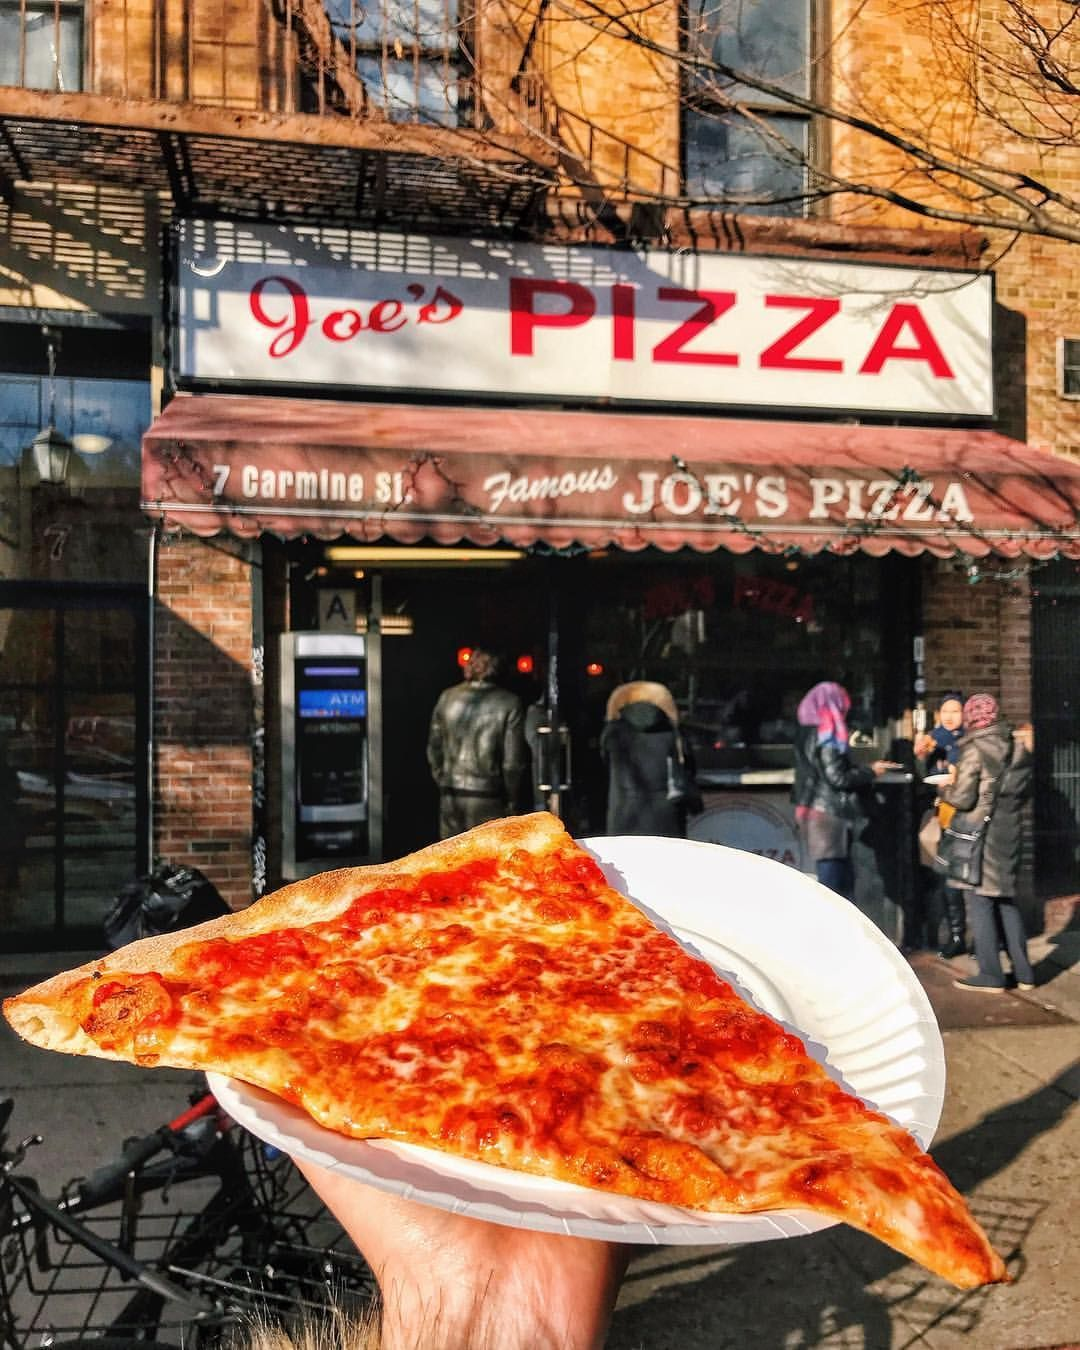 Travel New York City On Instagram Nyc Has A Pizza Of My Heart Rate This Slice From 1 10 Tabithael New York Pizza New York Food Best Pizza In Nyc